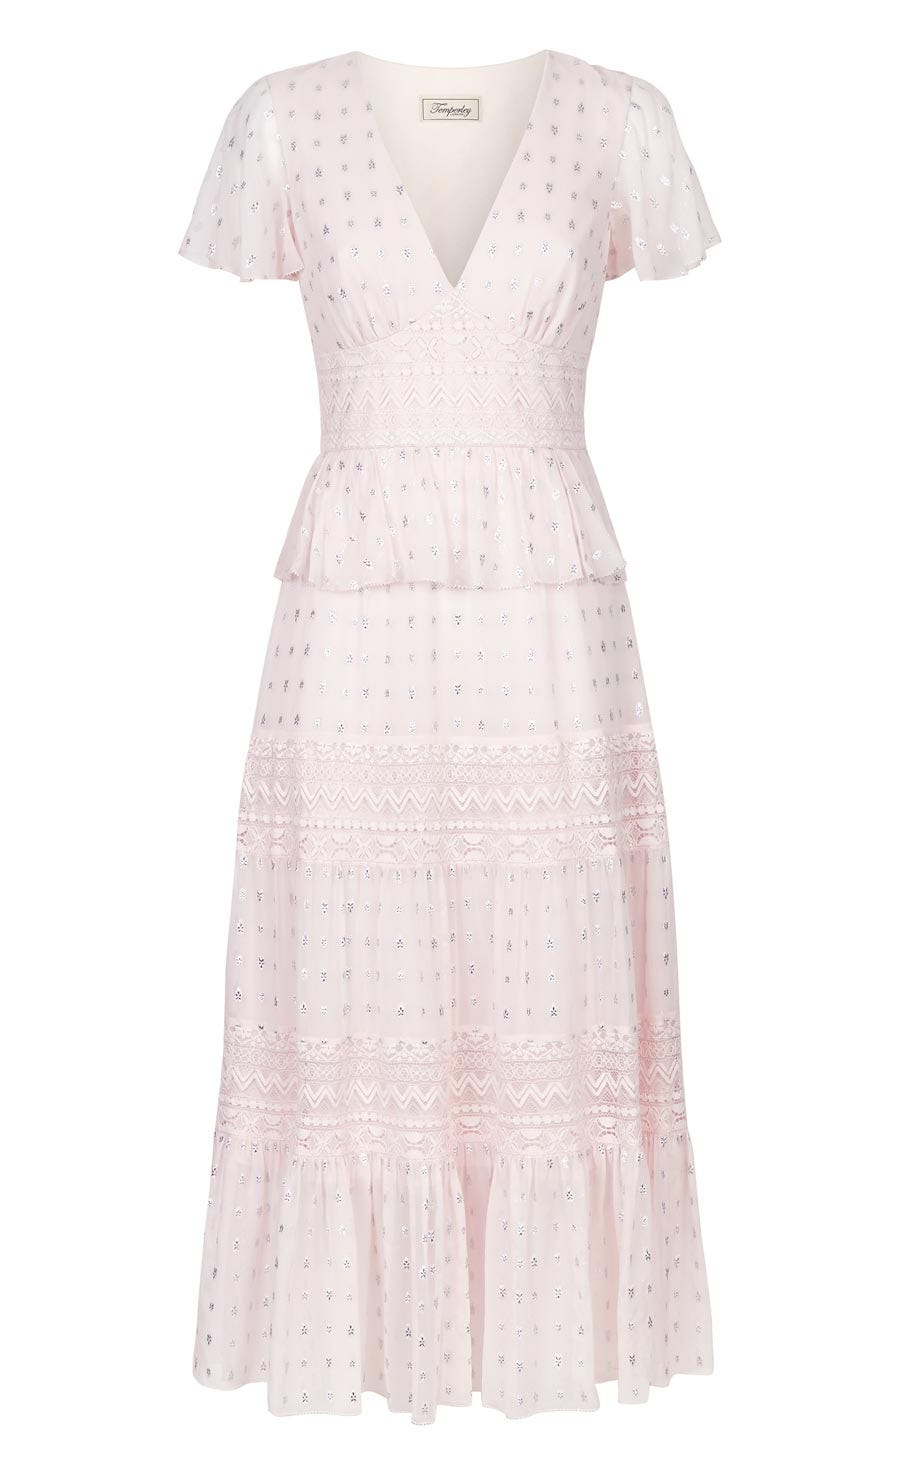 Wondering Lace Dress, Shell Mix